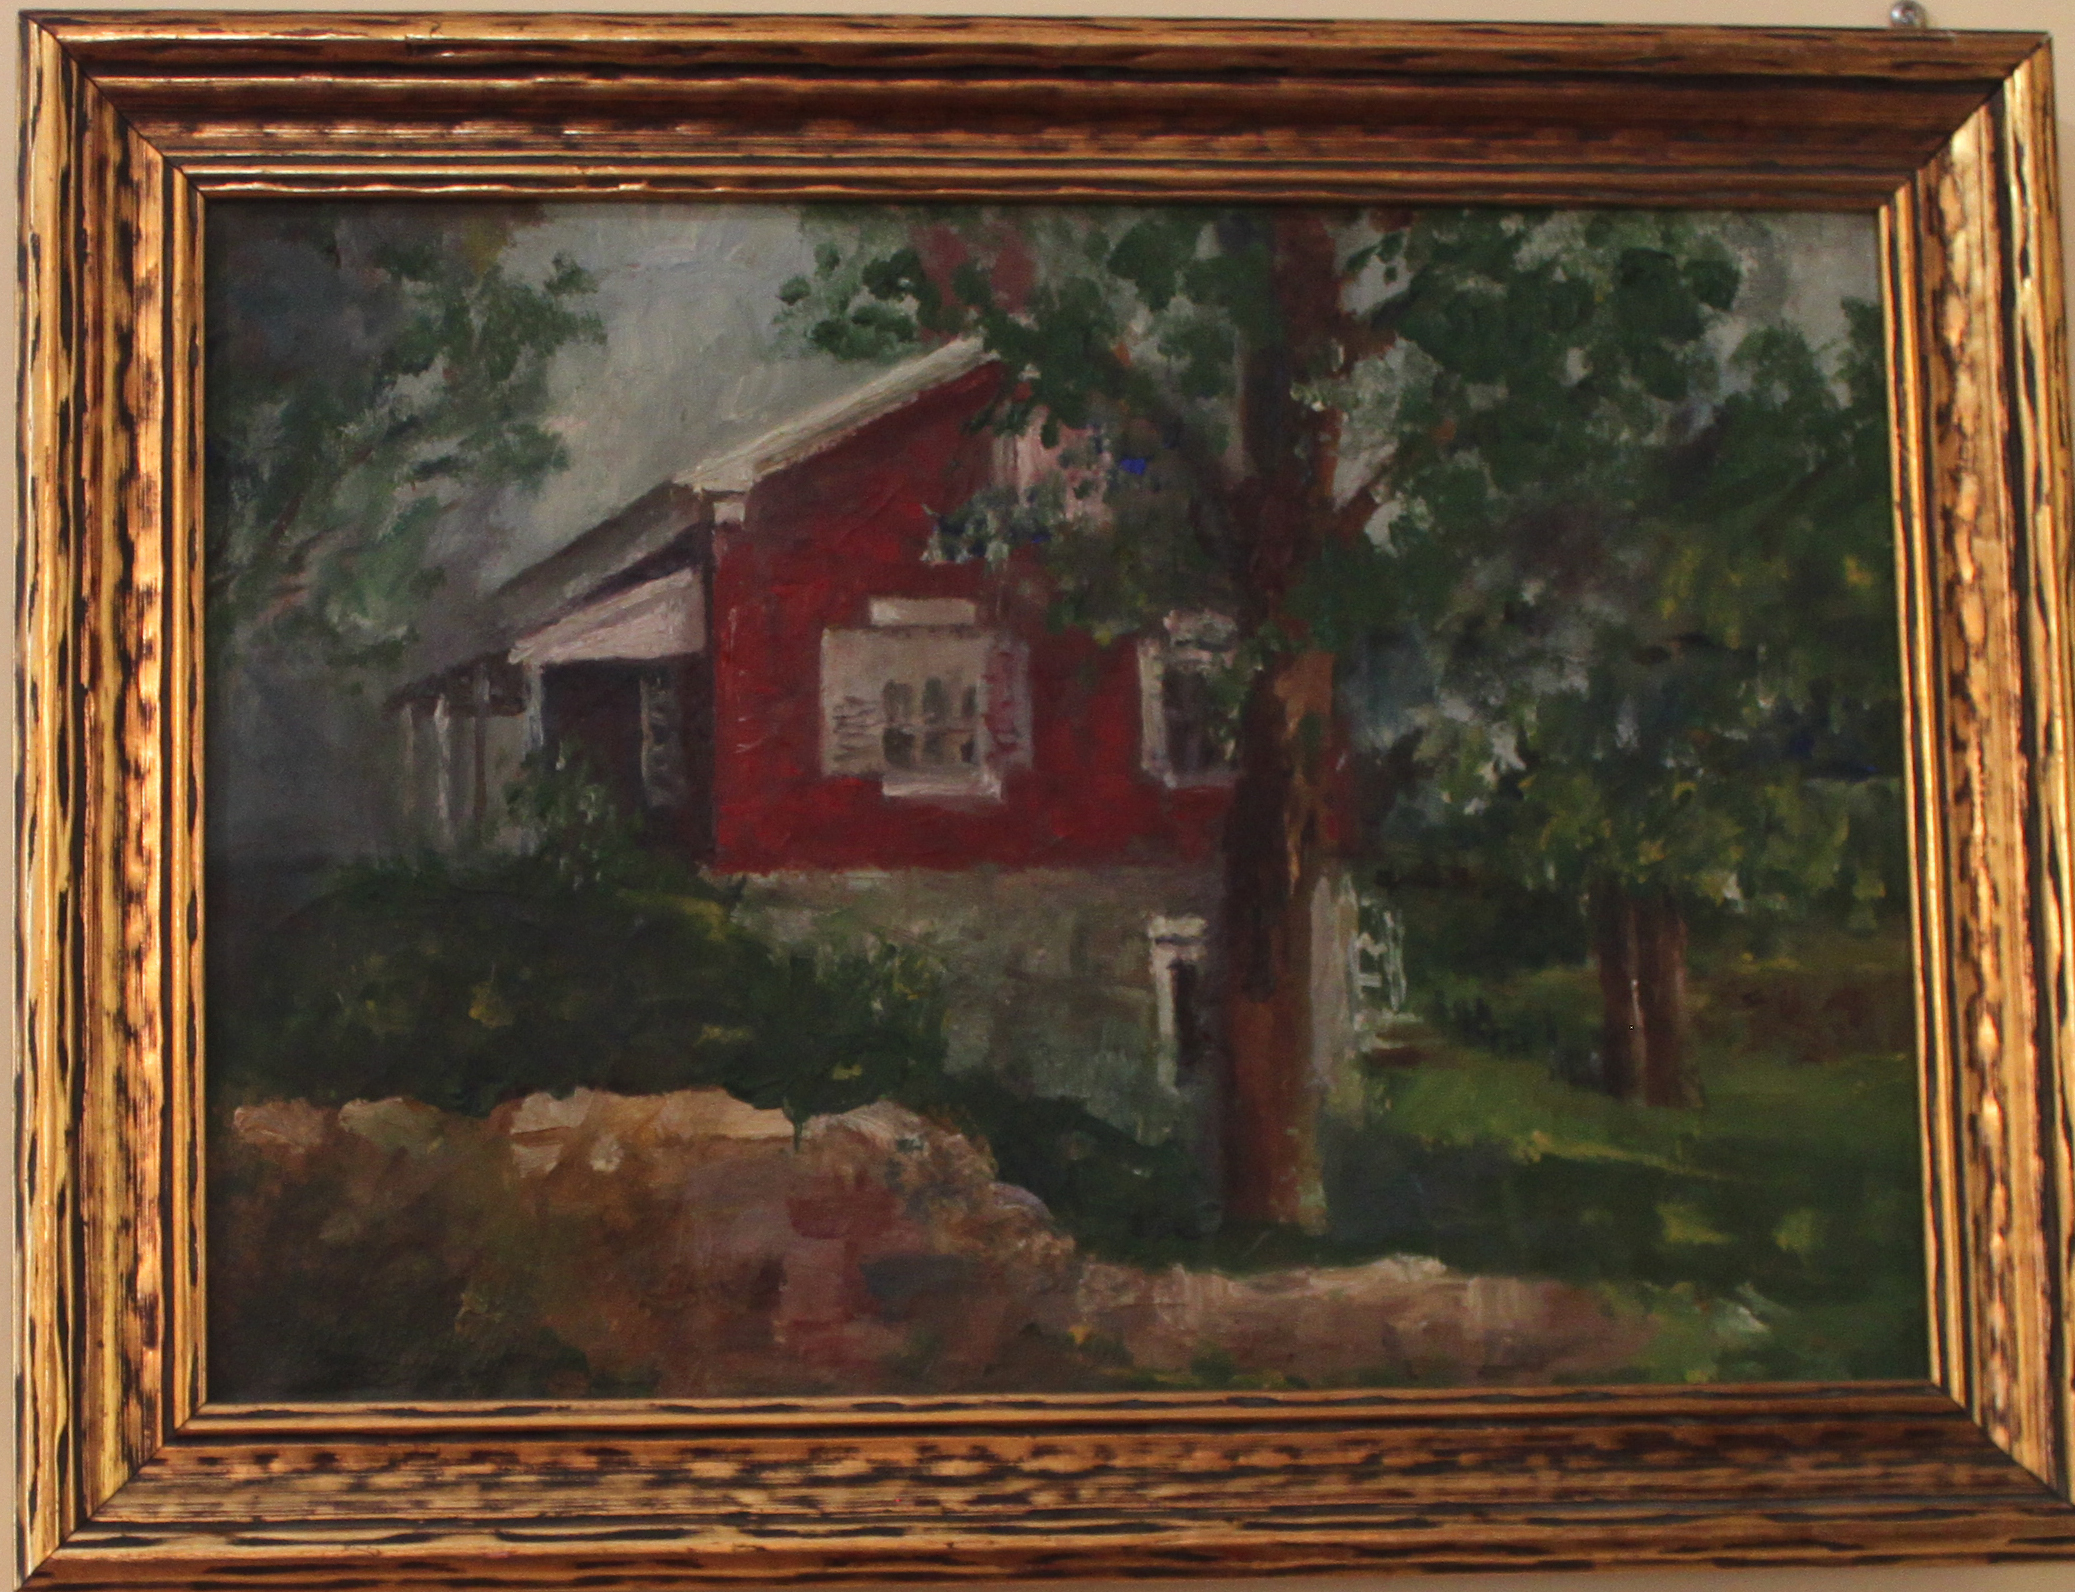 Framed, side view painting of Edison Home